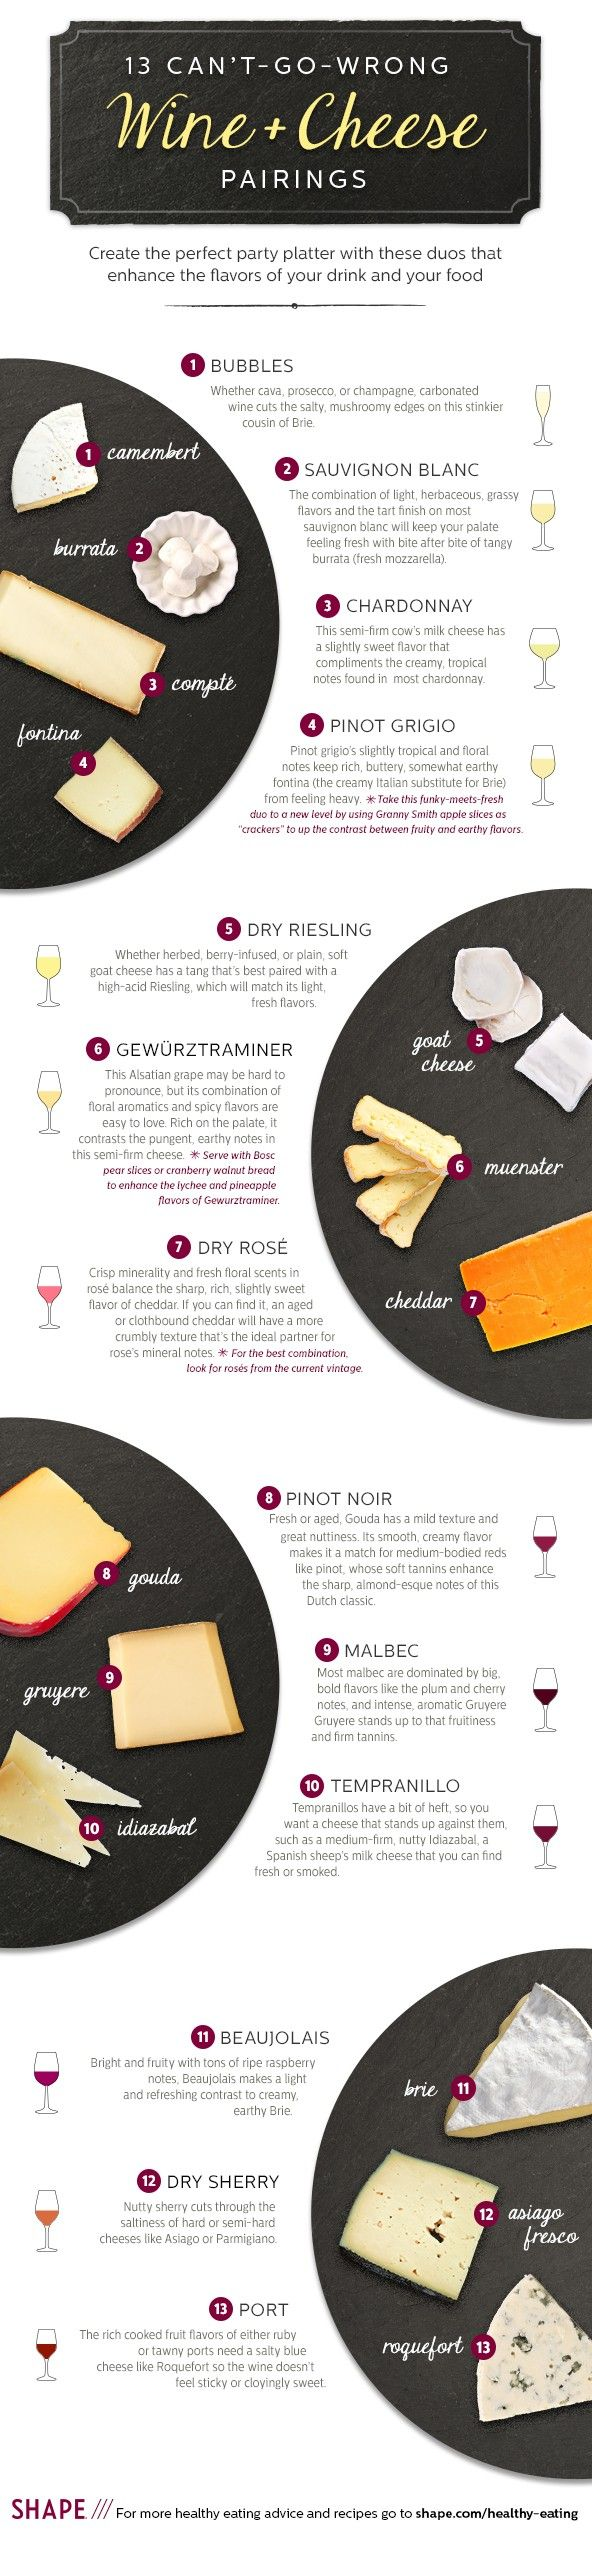 Wine & Cheese Pairings   National Cheese Lovers Day   The Snug